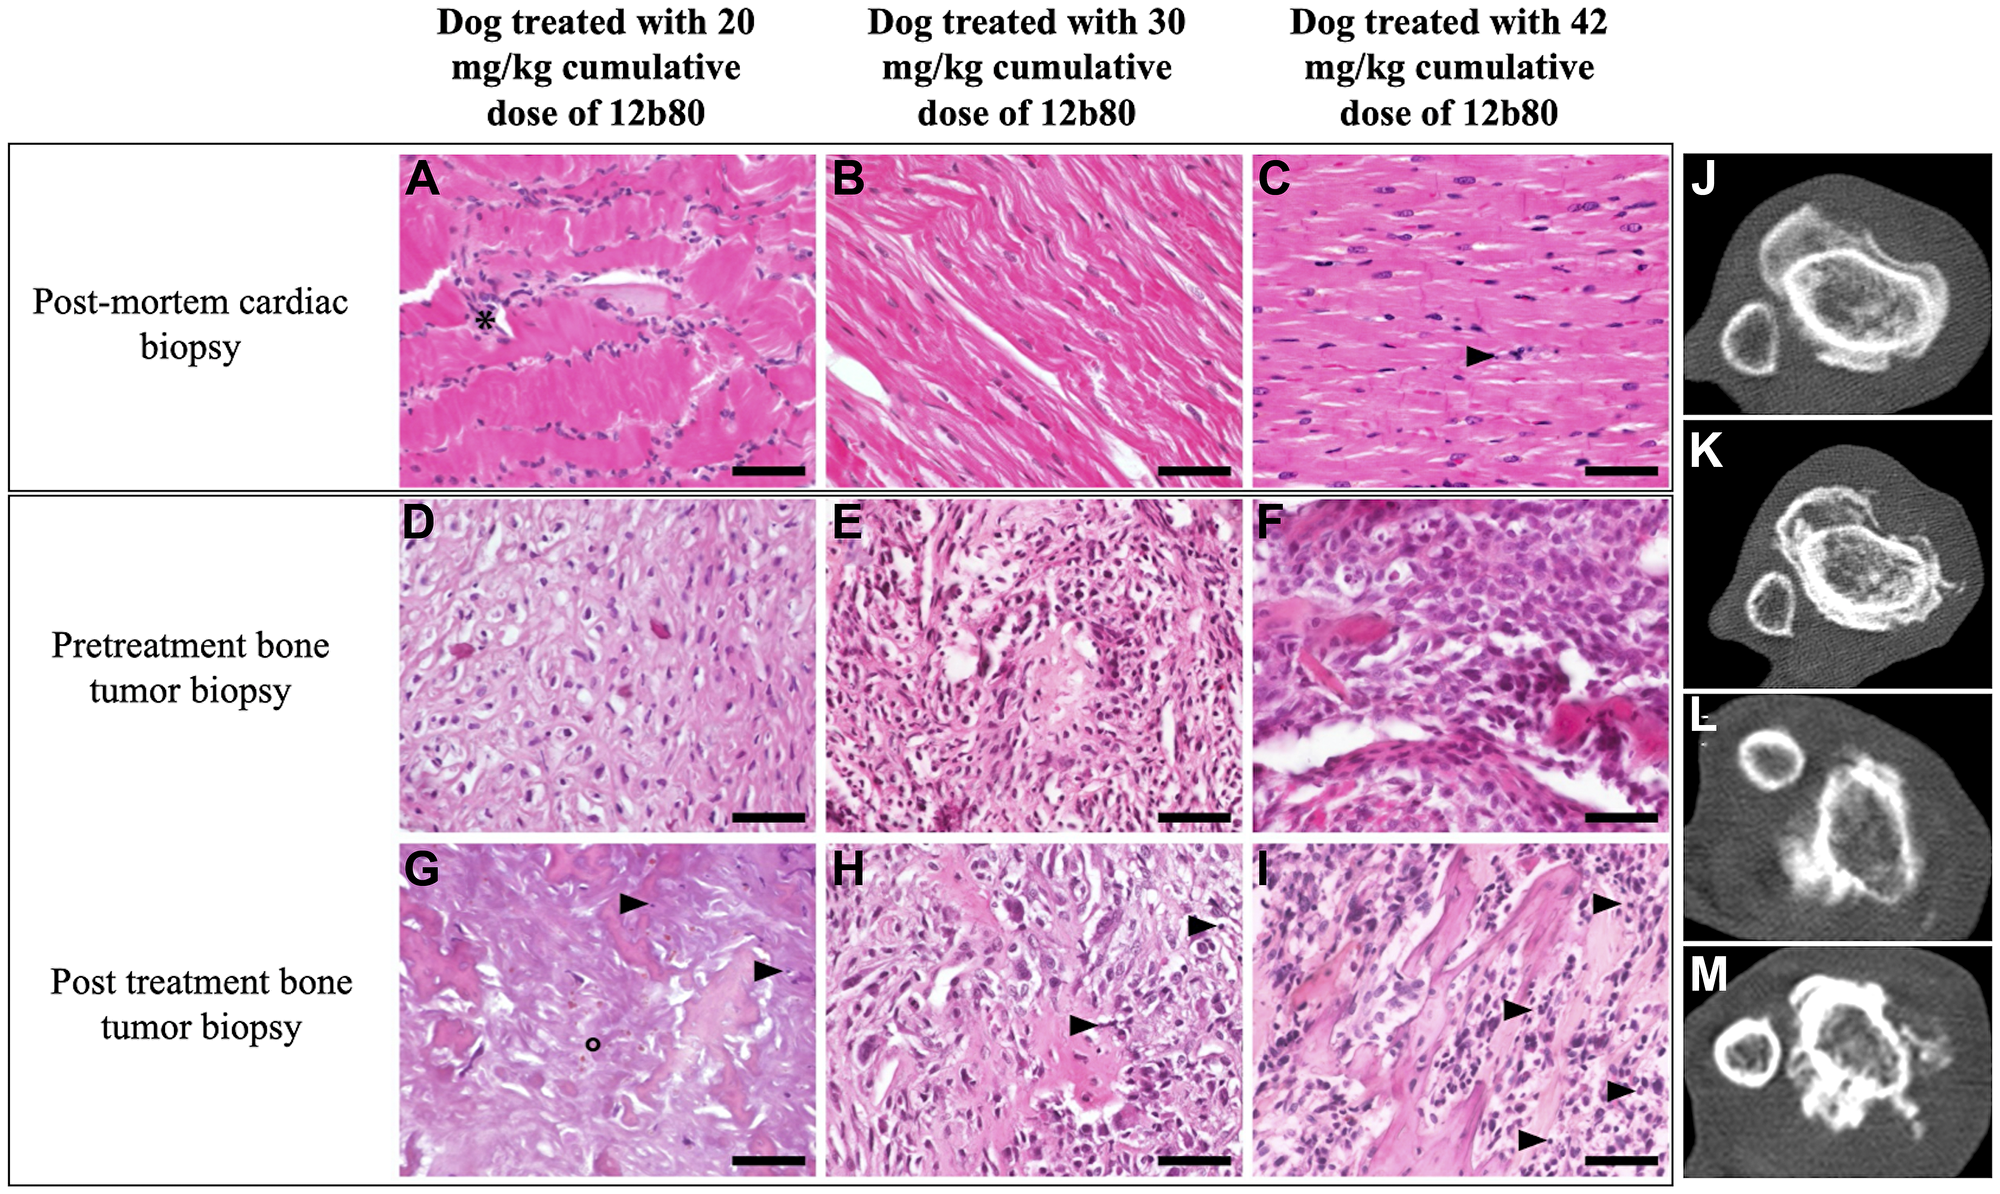 12b80 cardiac toxicity and antitumor activity in dogs.